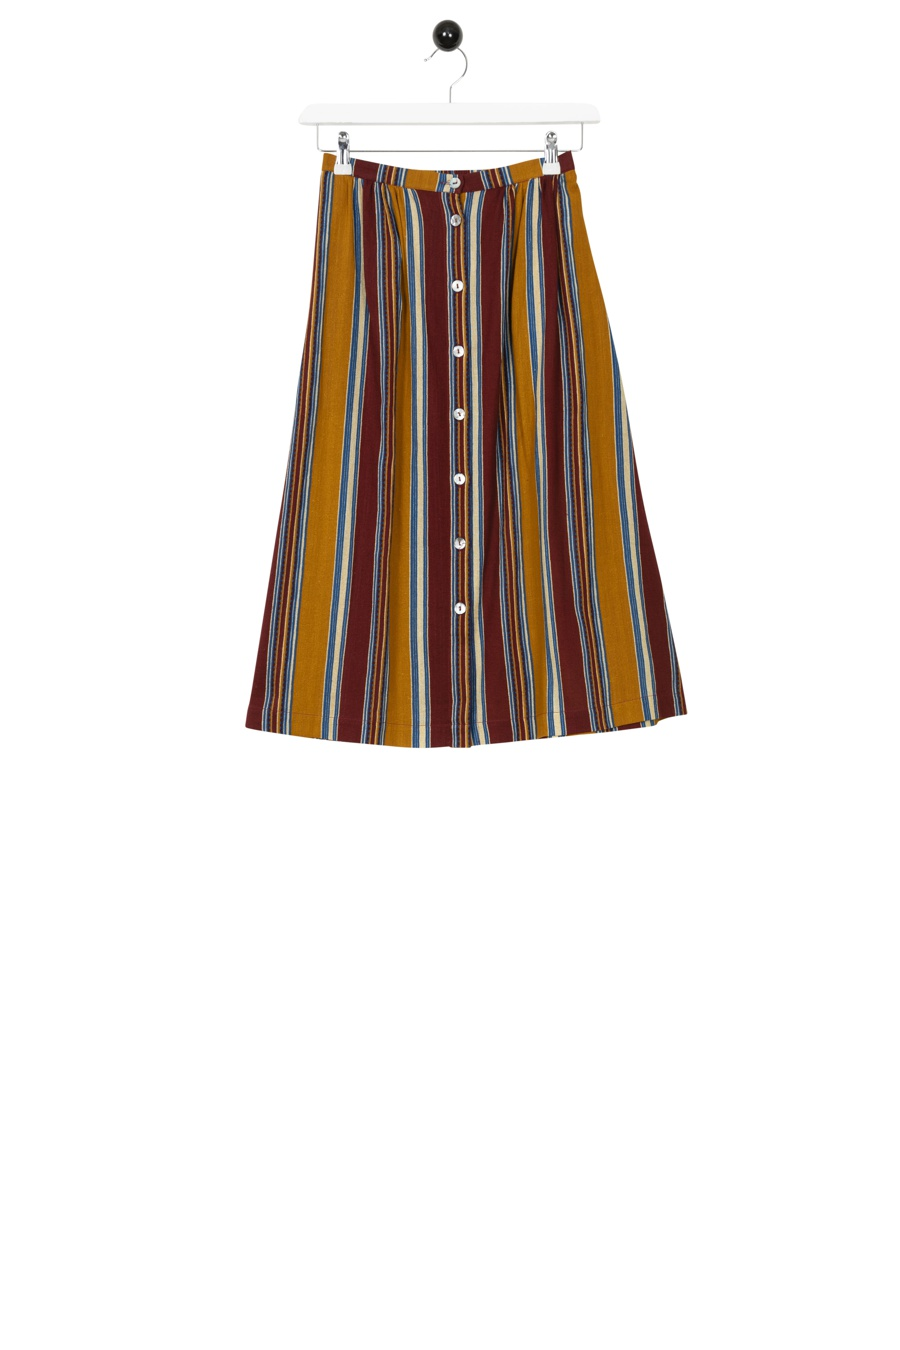 Bordeaux Skirt